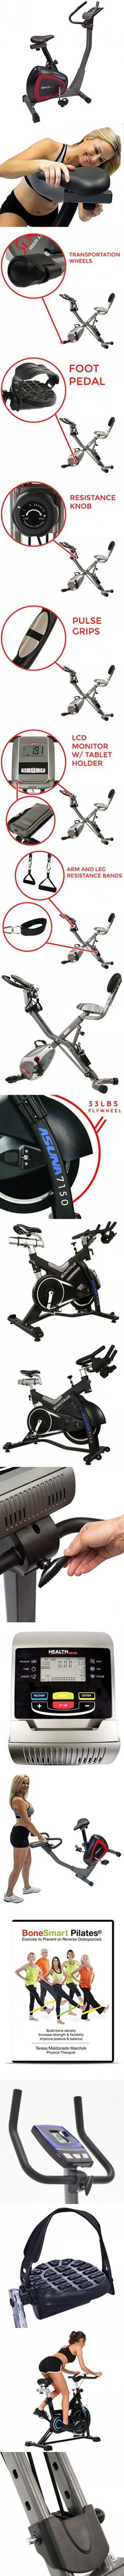 Health Gear UB500 Programmable Magnetic Resistance Health Club Style Exercise Bike